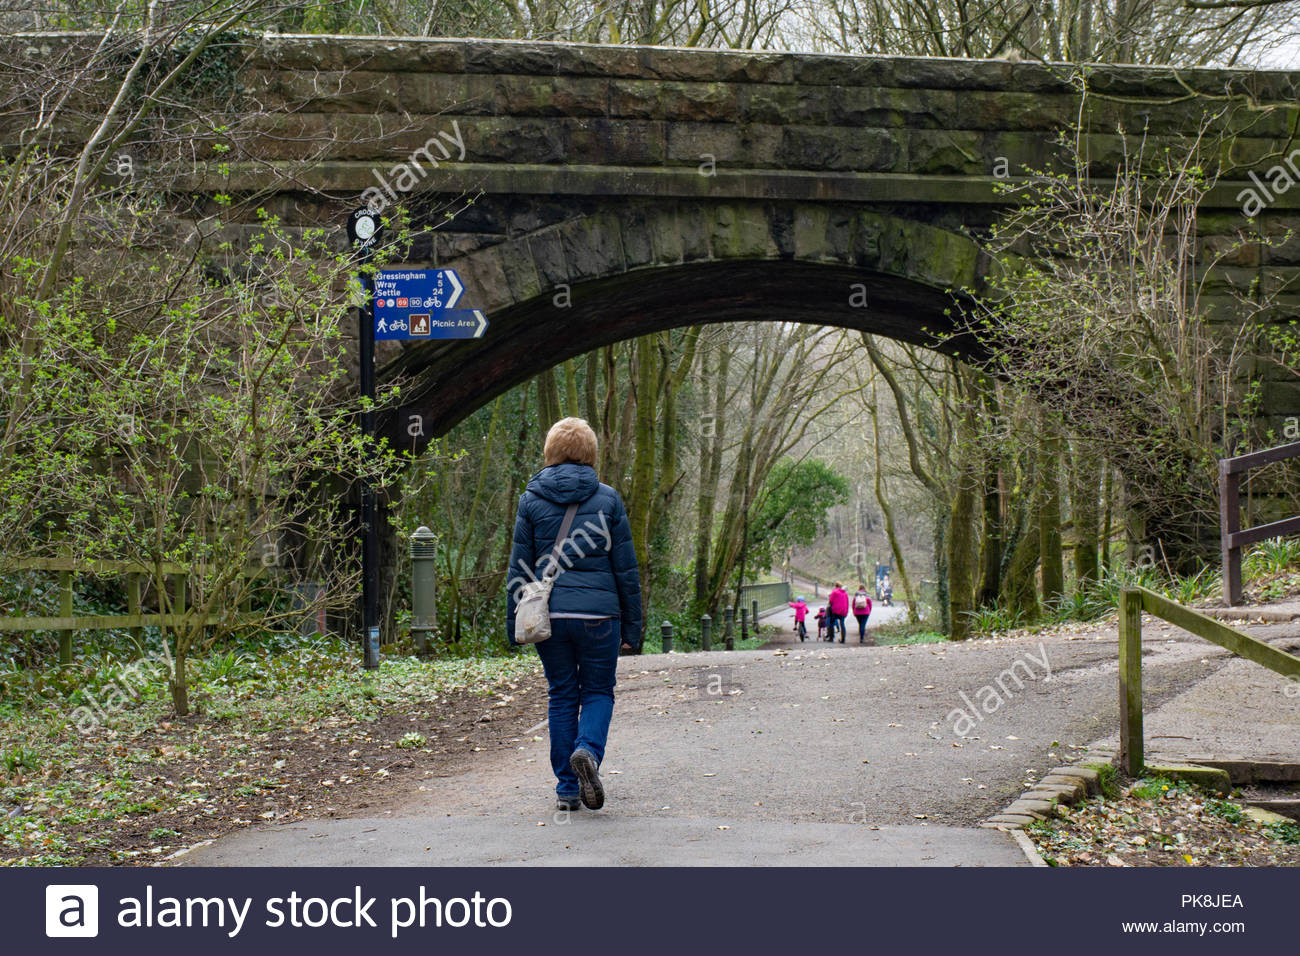 A walker on the Millenium Park at Crook of Lune, Caton, Lancaster, a dismantled railway now providing traffic free access in the Lune Valley - Stock Image